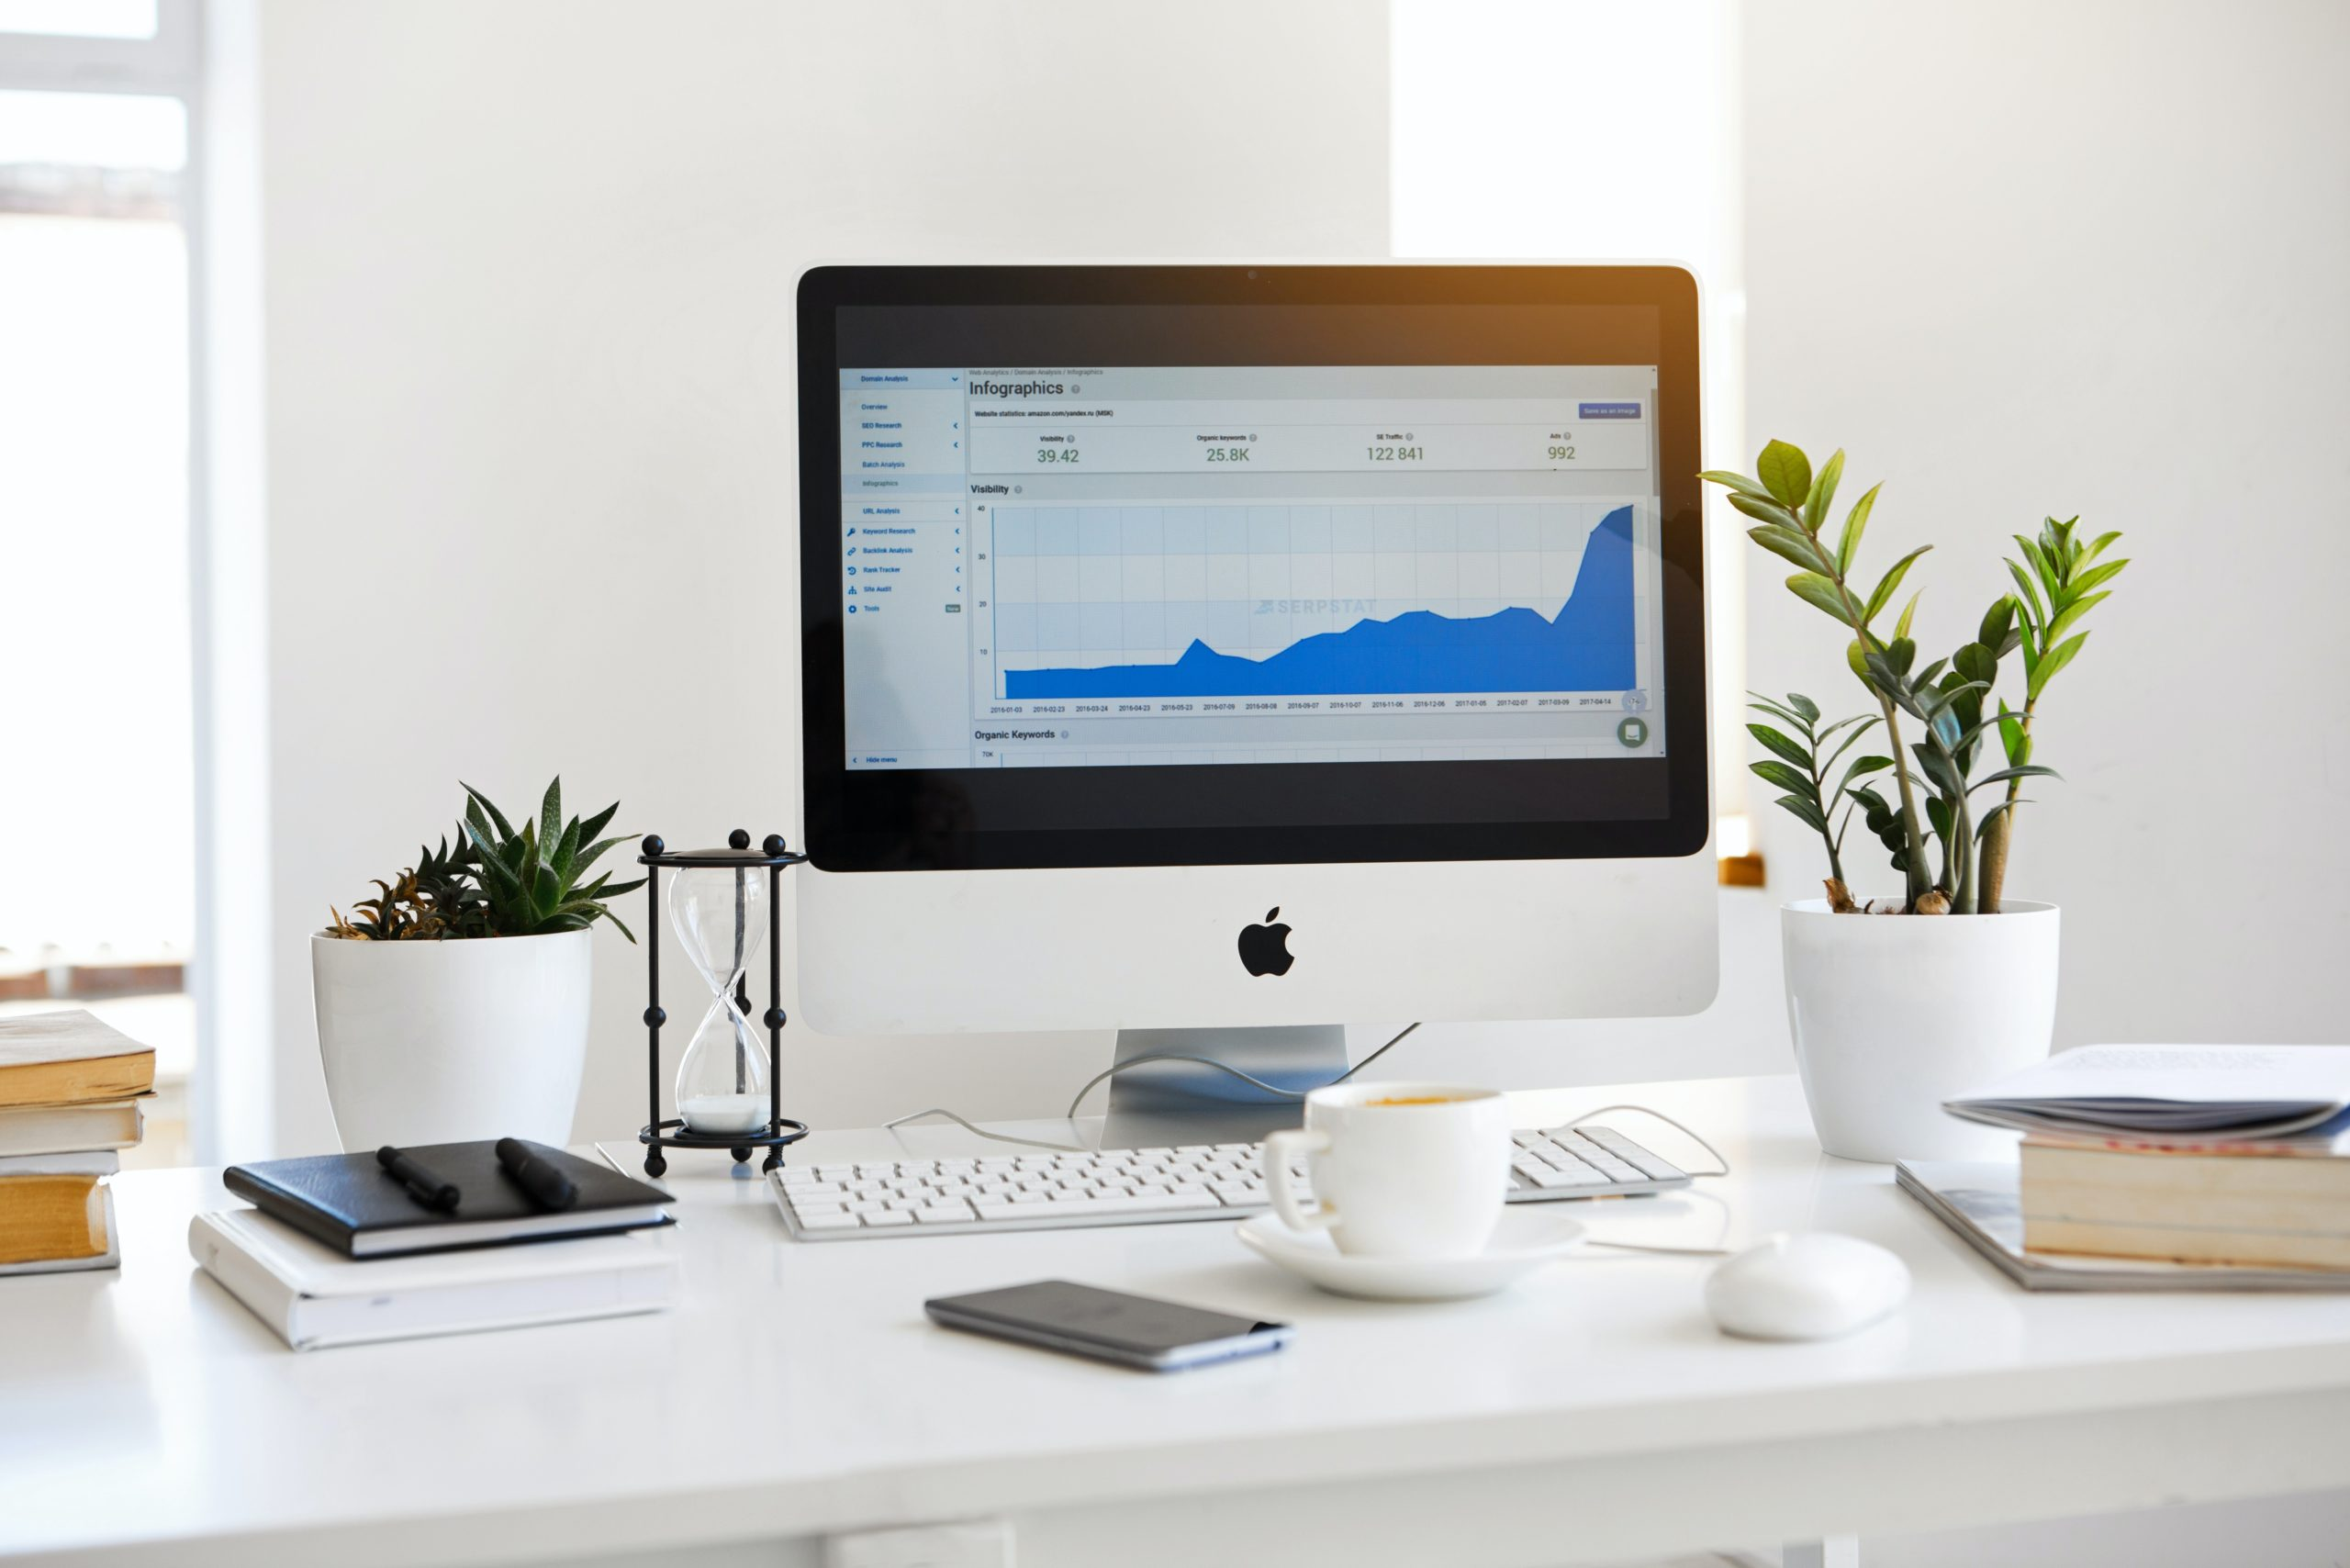 Finding Success with an Online Business